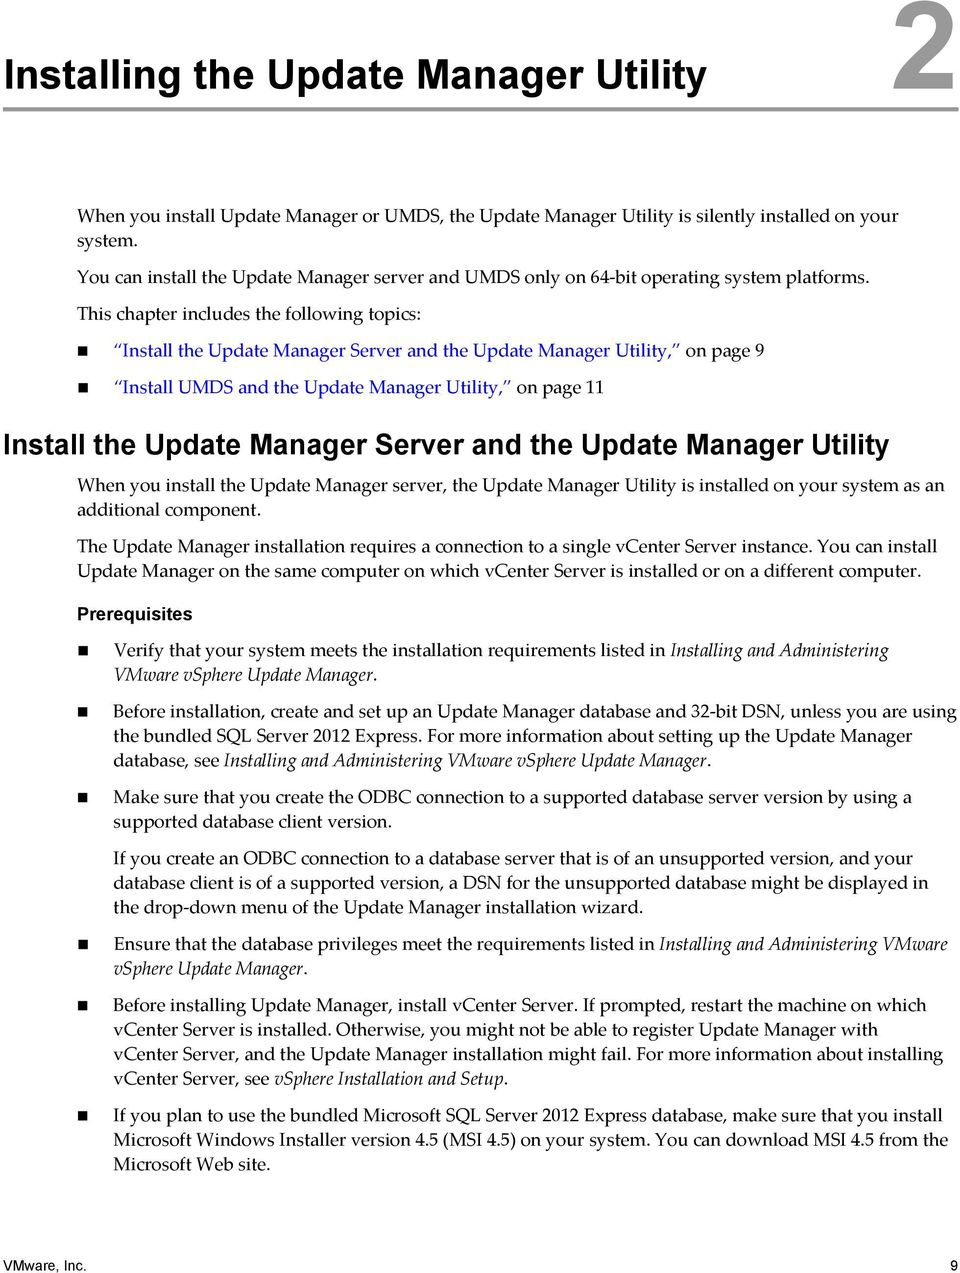 This chapter includes the following topics: Install the Update Manager Server and the Update Manager Utility, on page 9 Install UMDS and the Update Manager Utility, on page 11 Install the Update